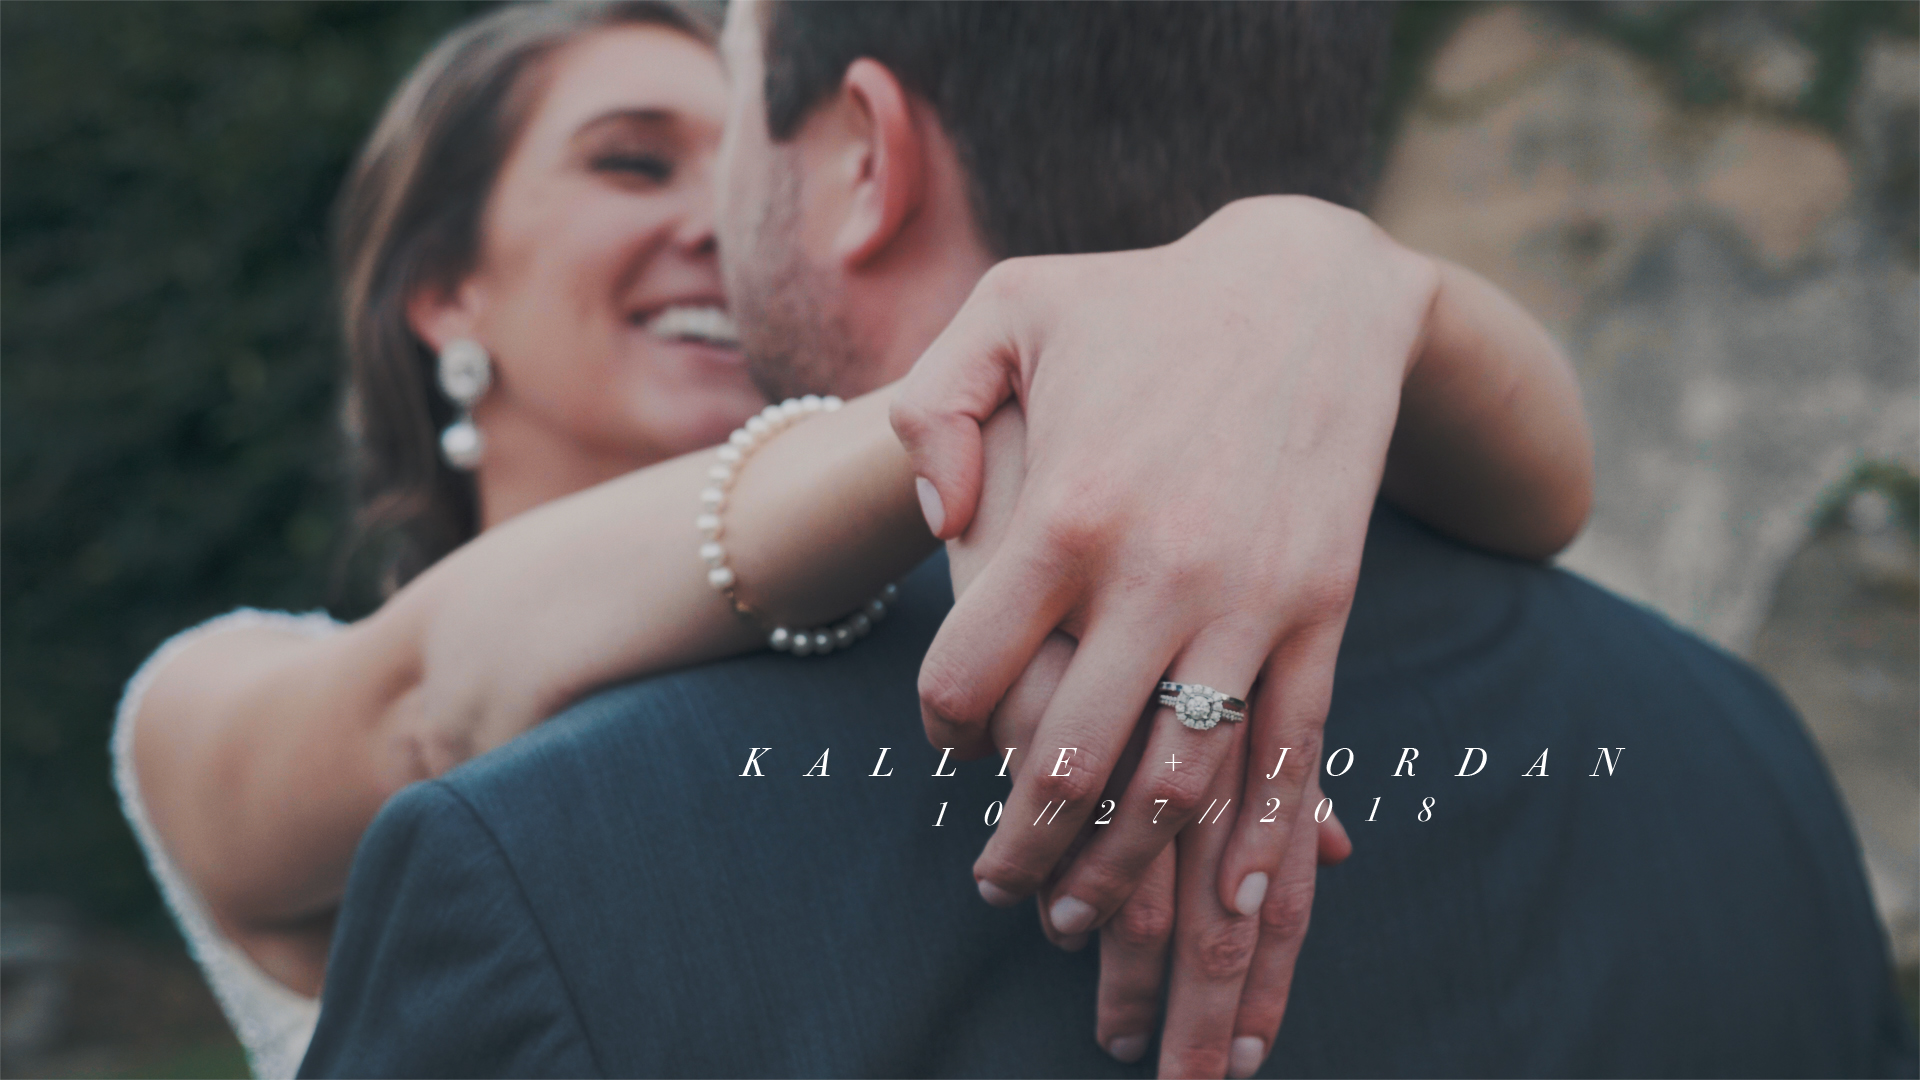 Kallie + Jordan | Dothan, Alabama | The Grand on Foster, Dothan